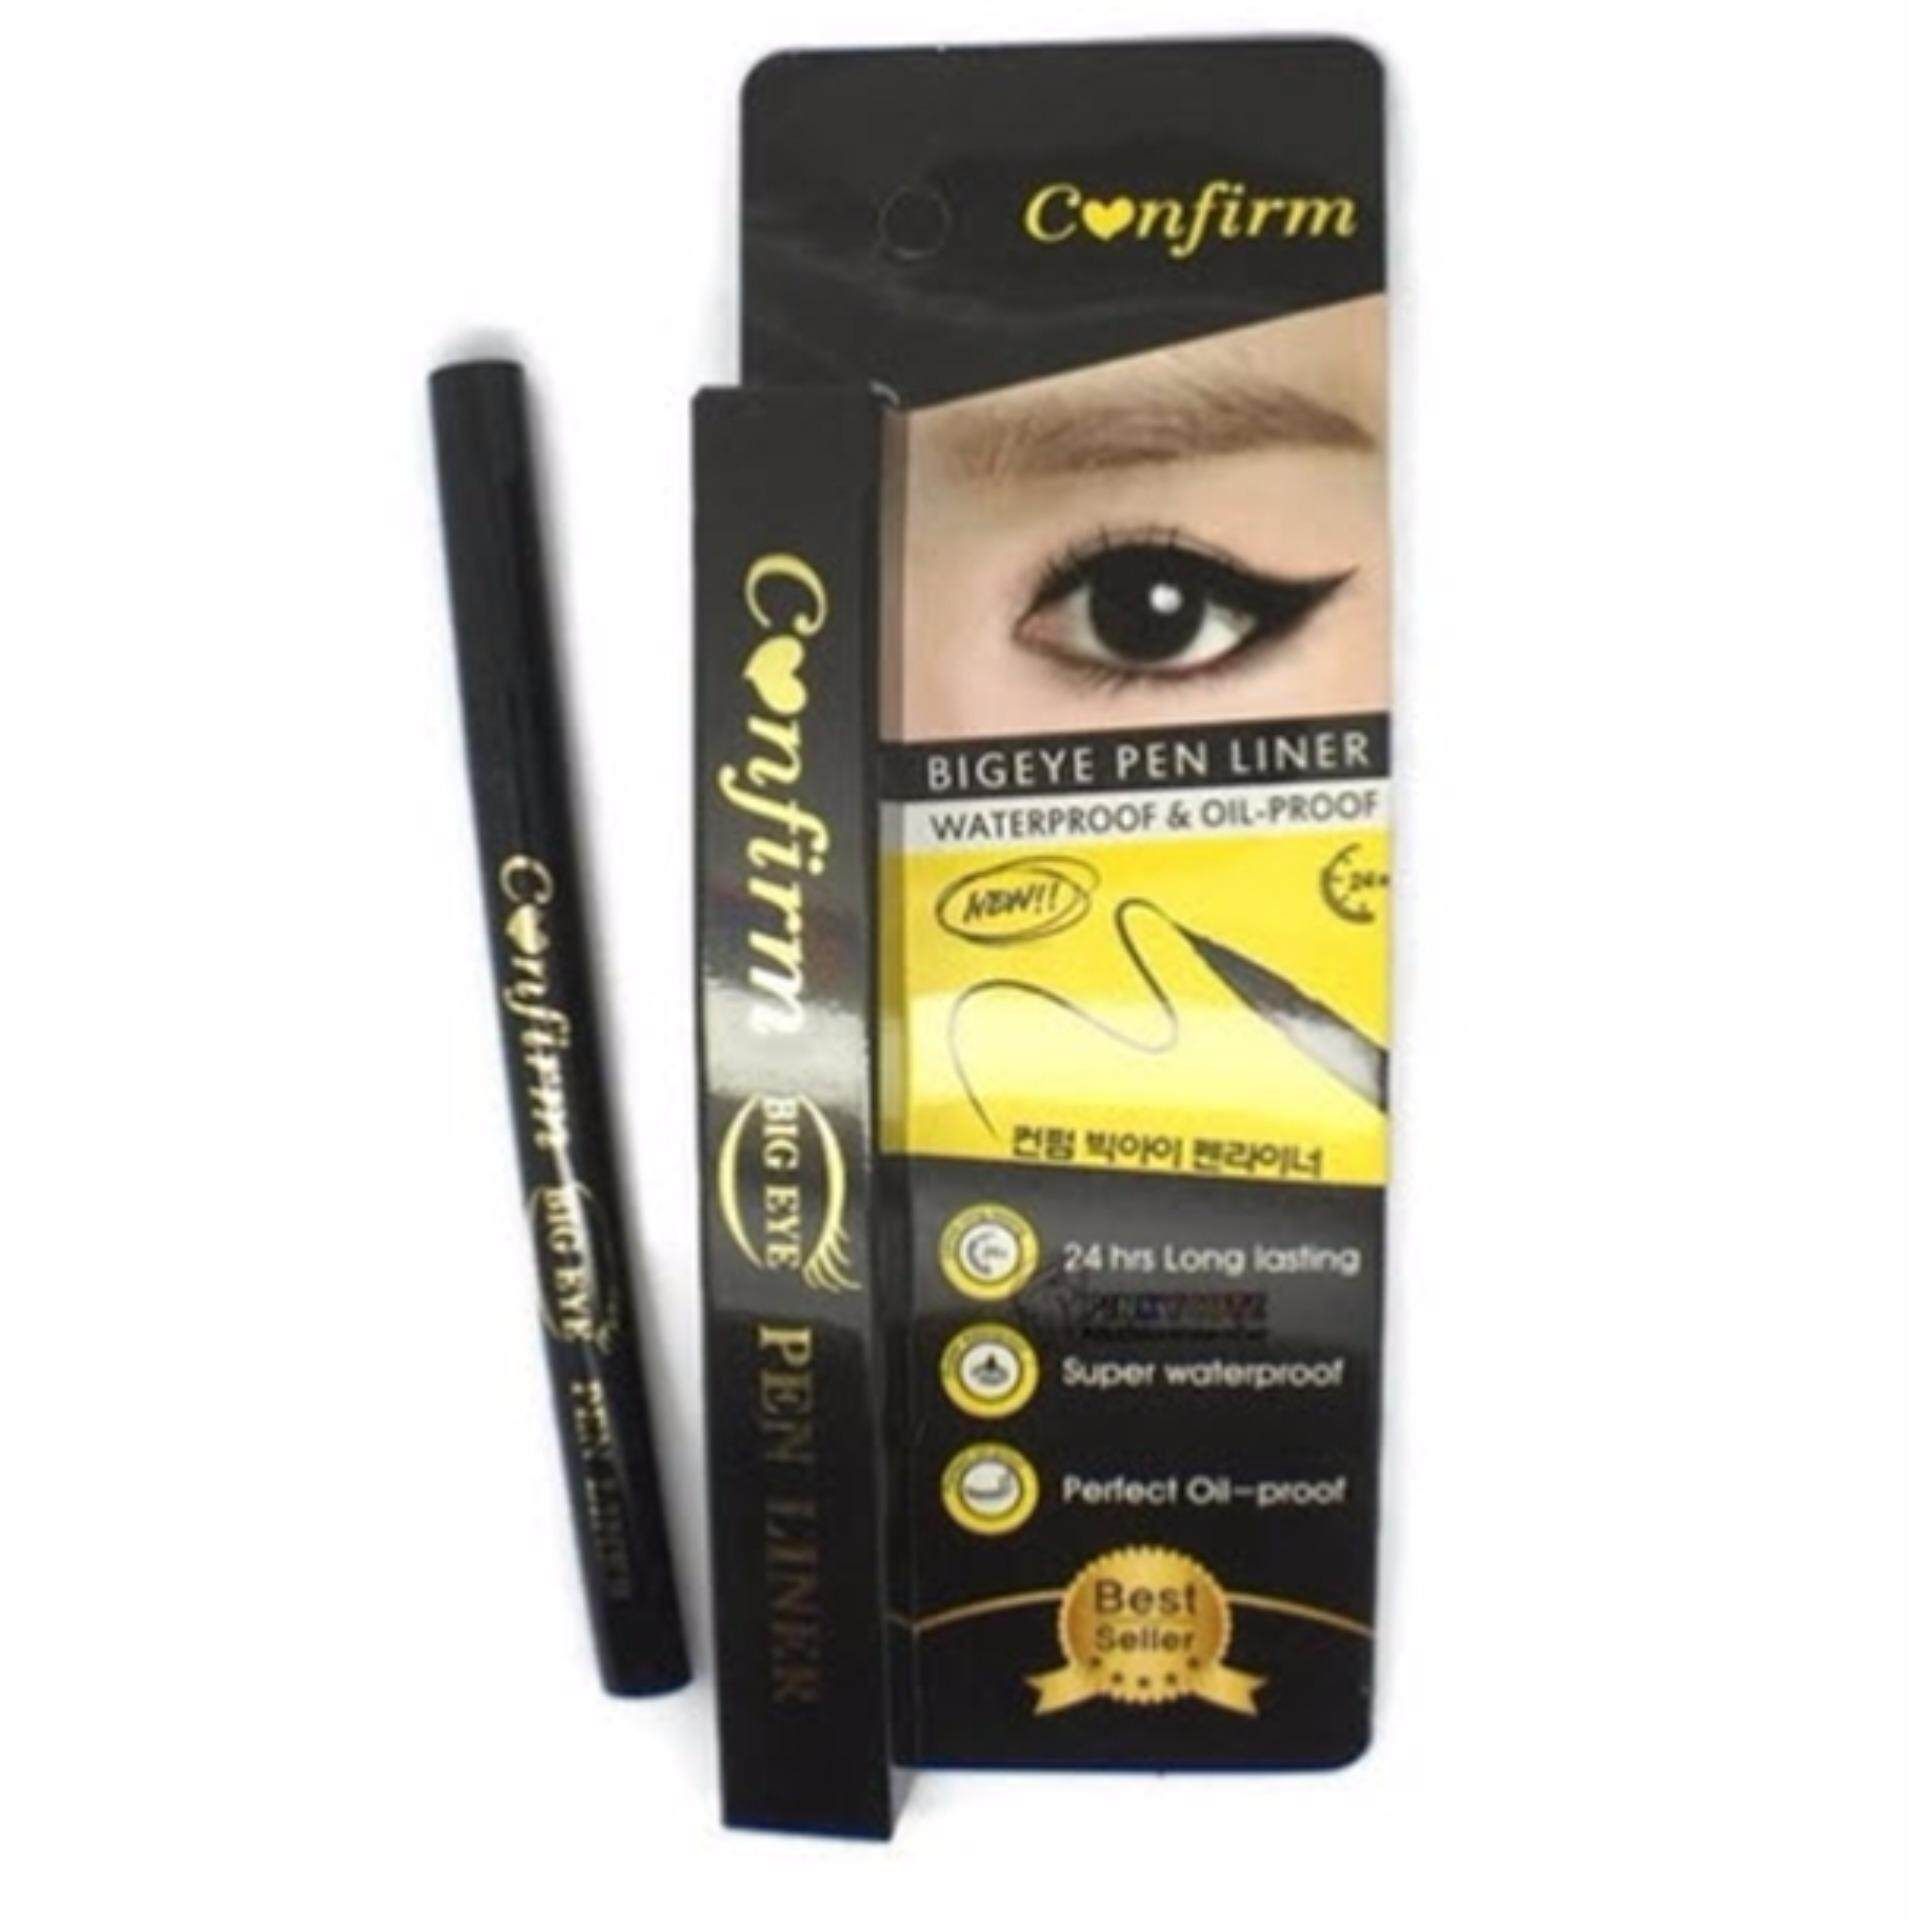 Confirm Big Eye Pen Liner Confirm